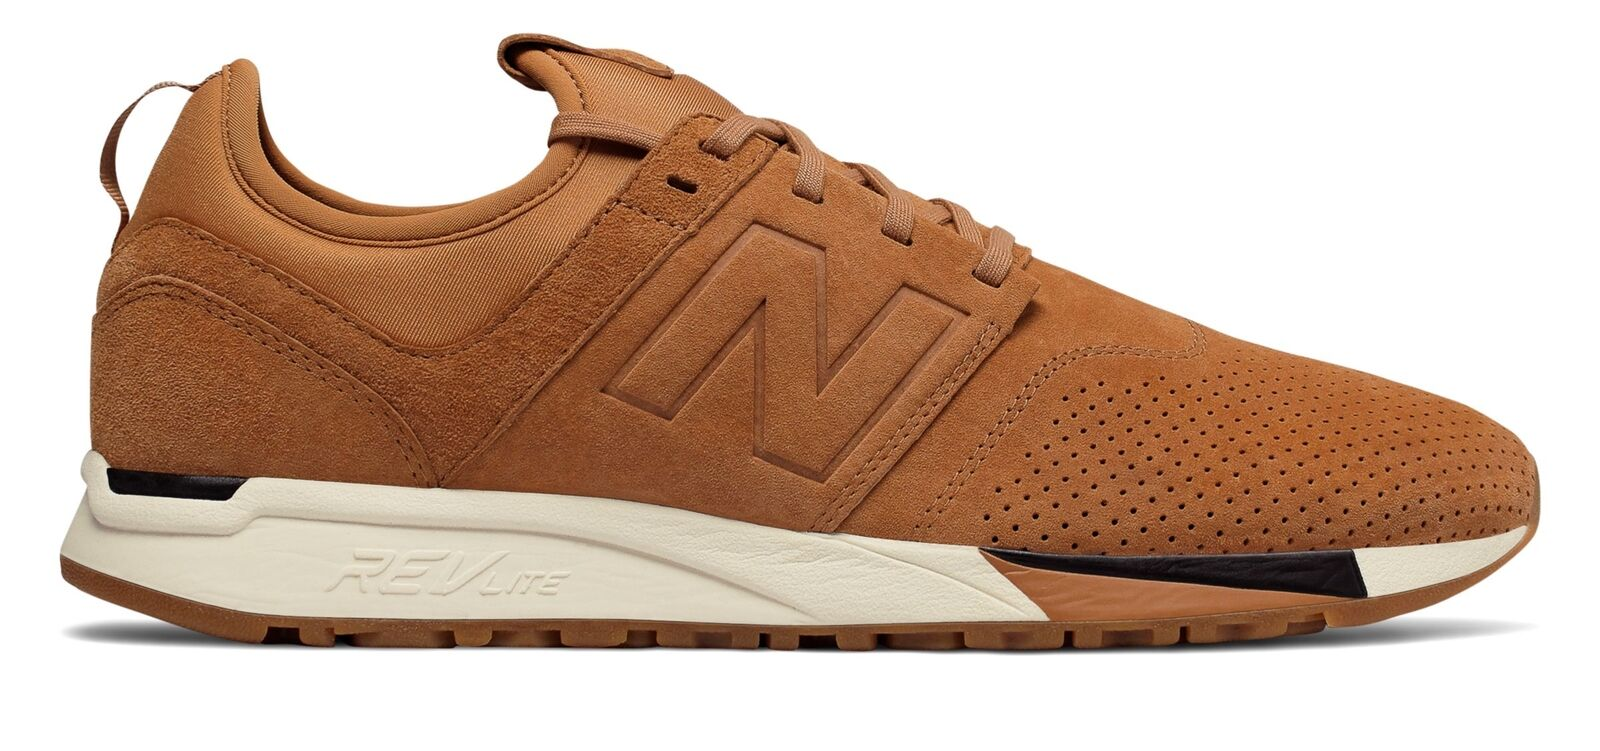 New Balance Men's 247 Luxe Shoes Tan with White & Black